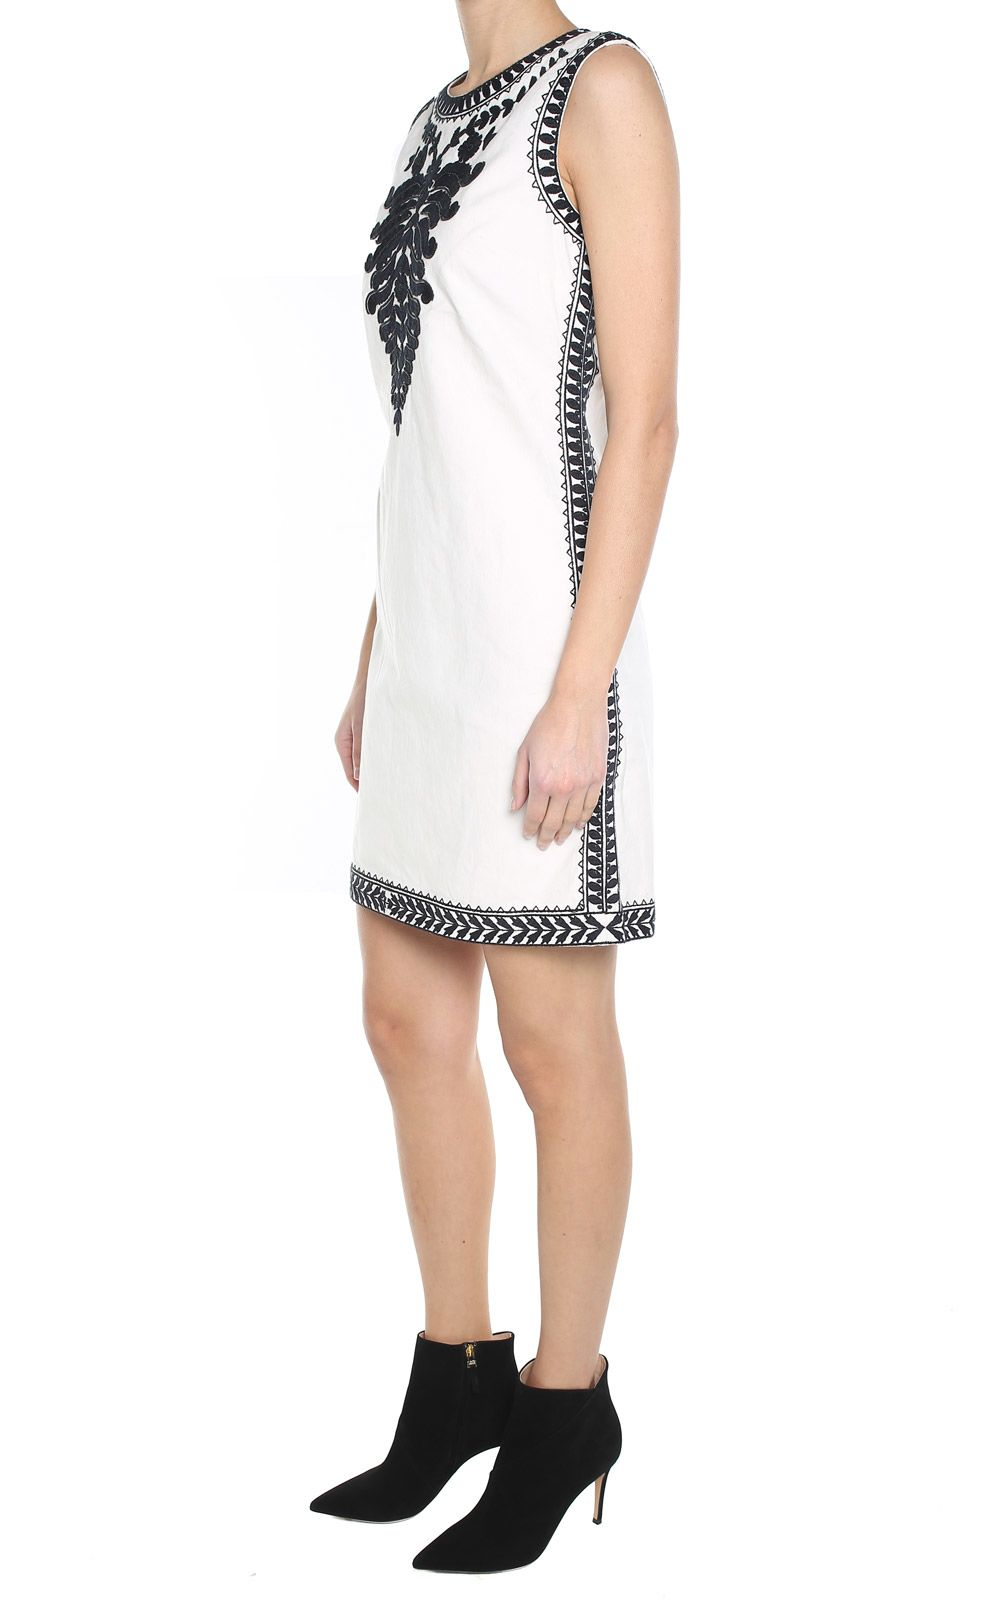 Camille embroidered cotton-canvas dress Tory Burch Outlet Where To Buy Cheap Footlocker Pictures 2VlCOkpldY